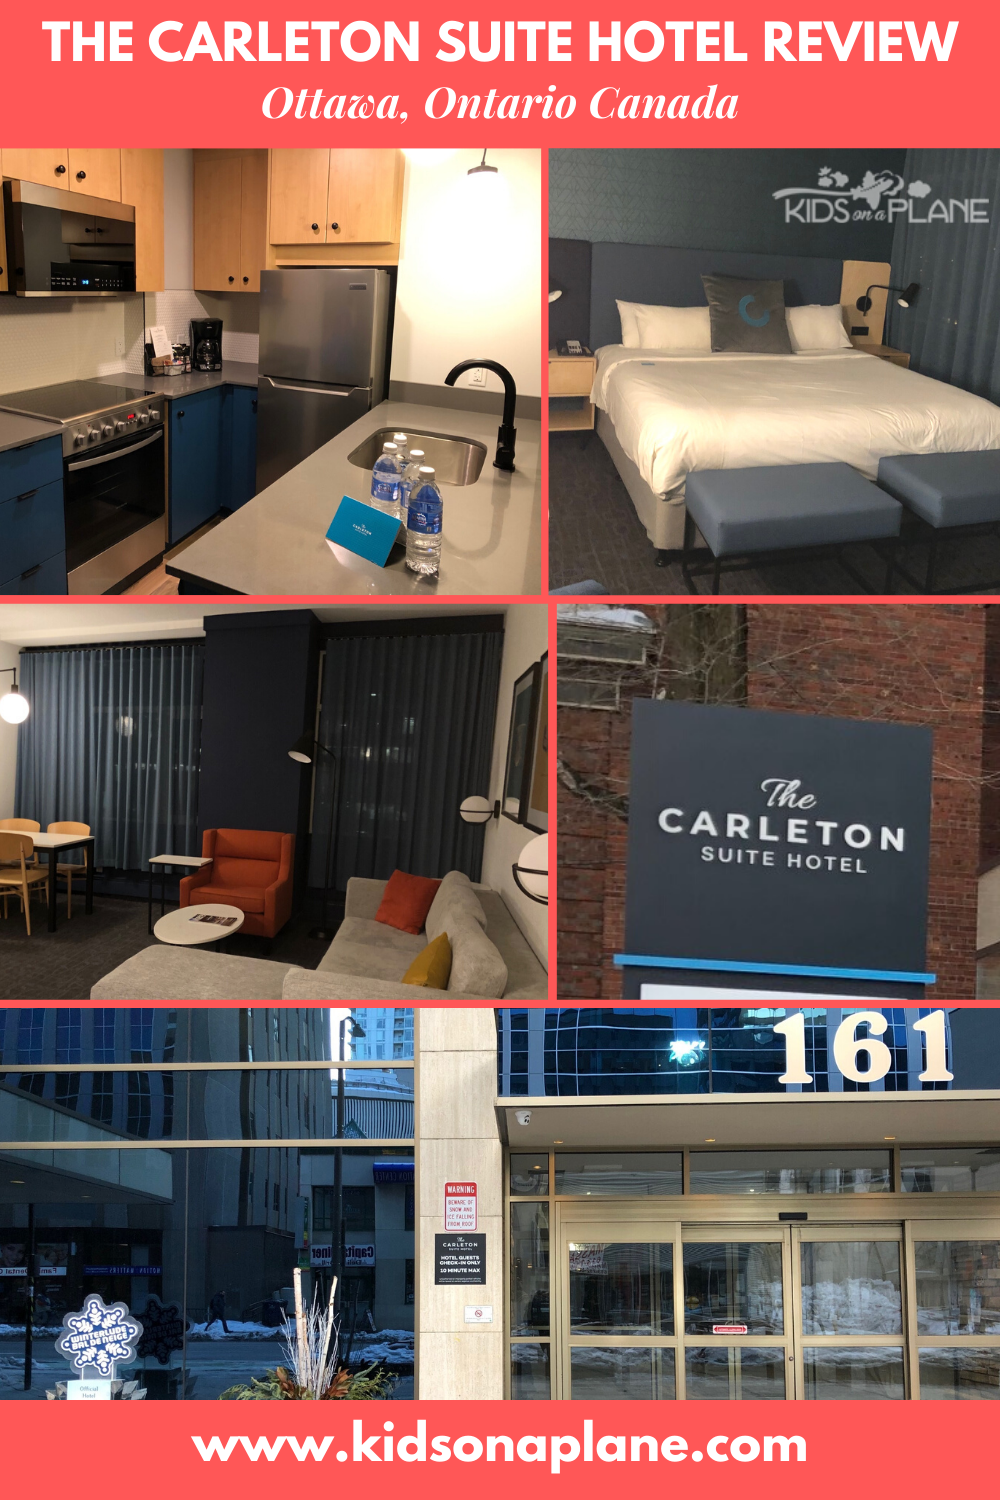 The Carleton Suite Hotel in Ottawa Review - One Bedroom Suite with Kitchen and Free Breakfast